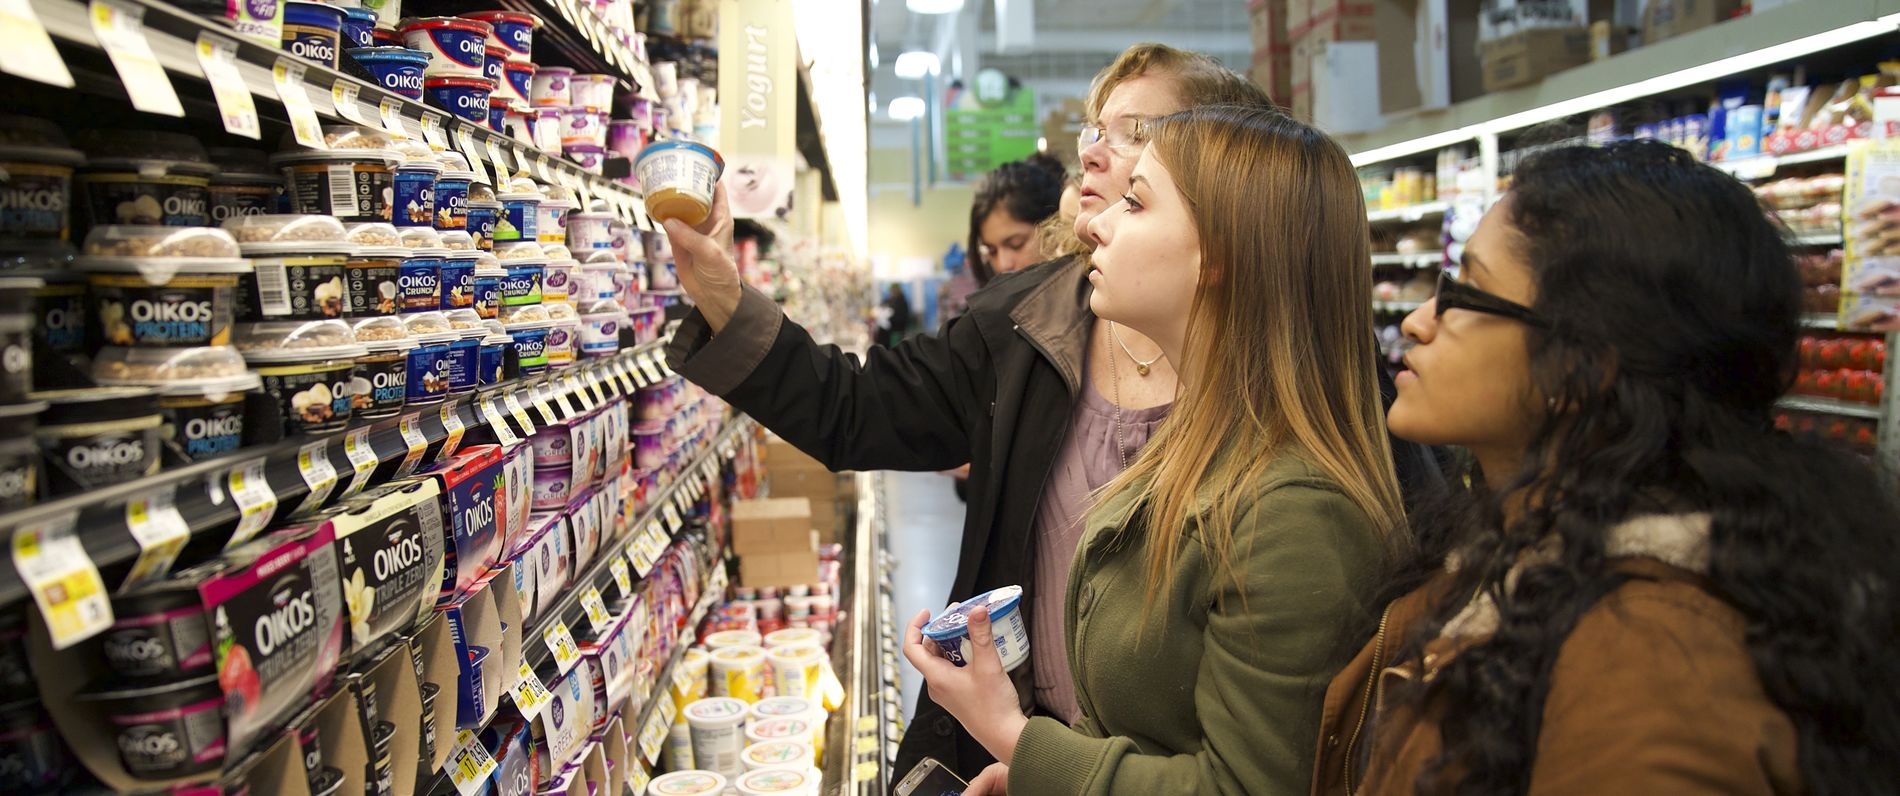 Professor and students examining the nutrition label of a yogurt in the supermarket